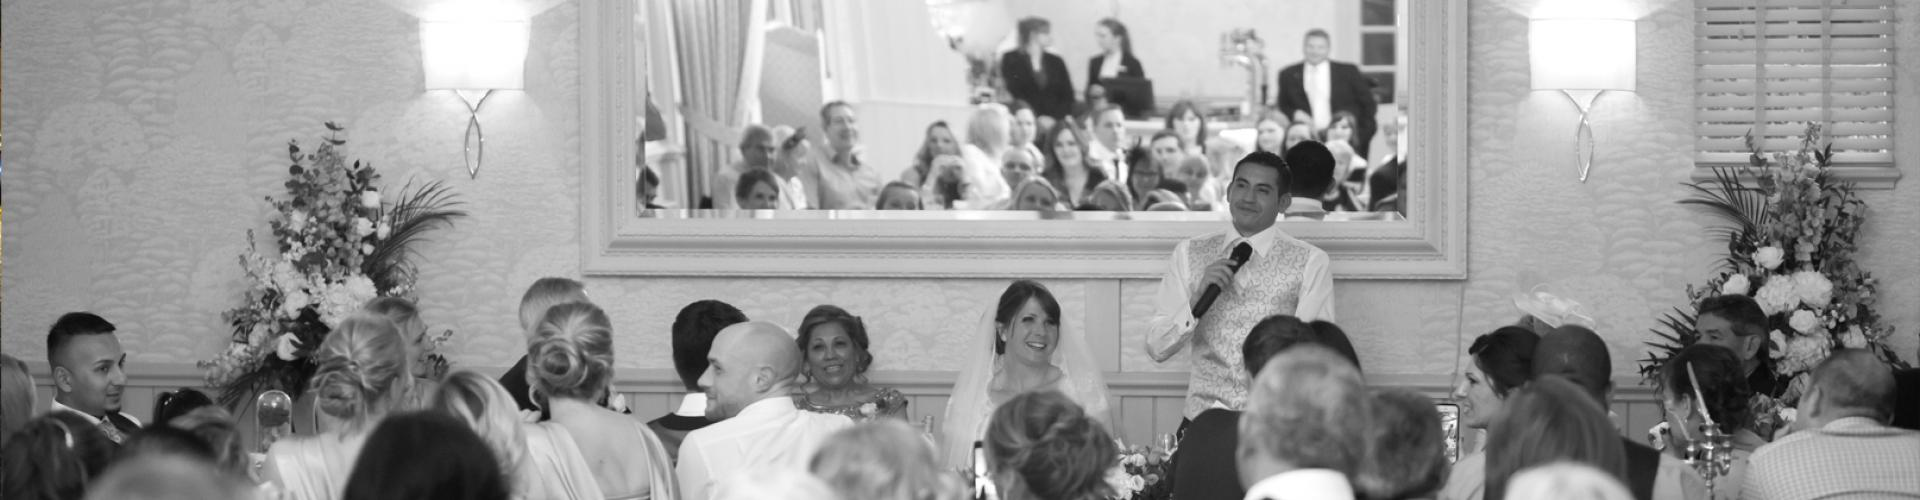 Large wedding ceremonies at Ravenwood Hall